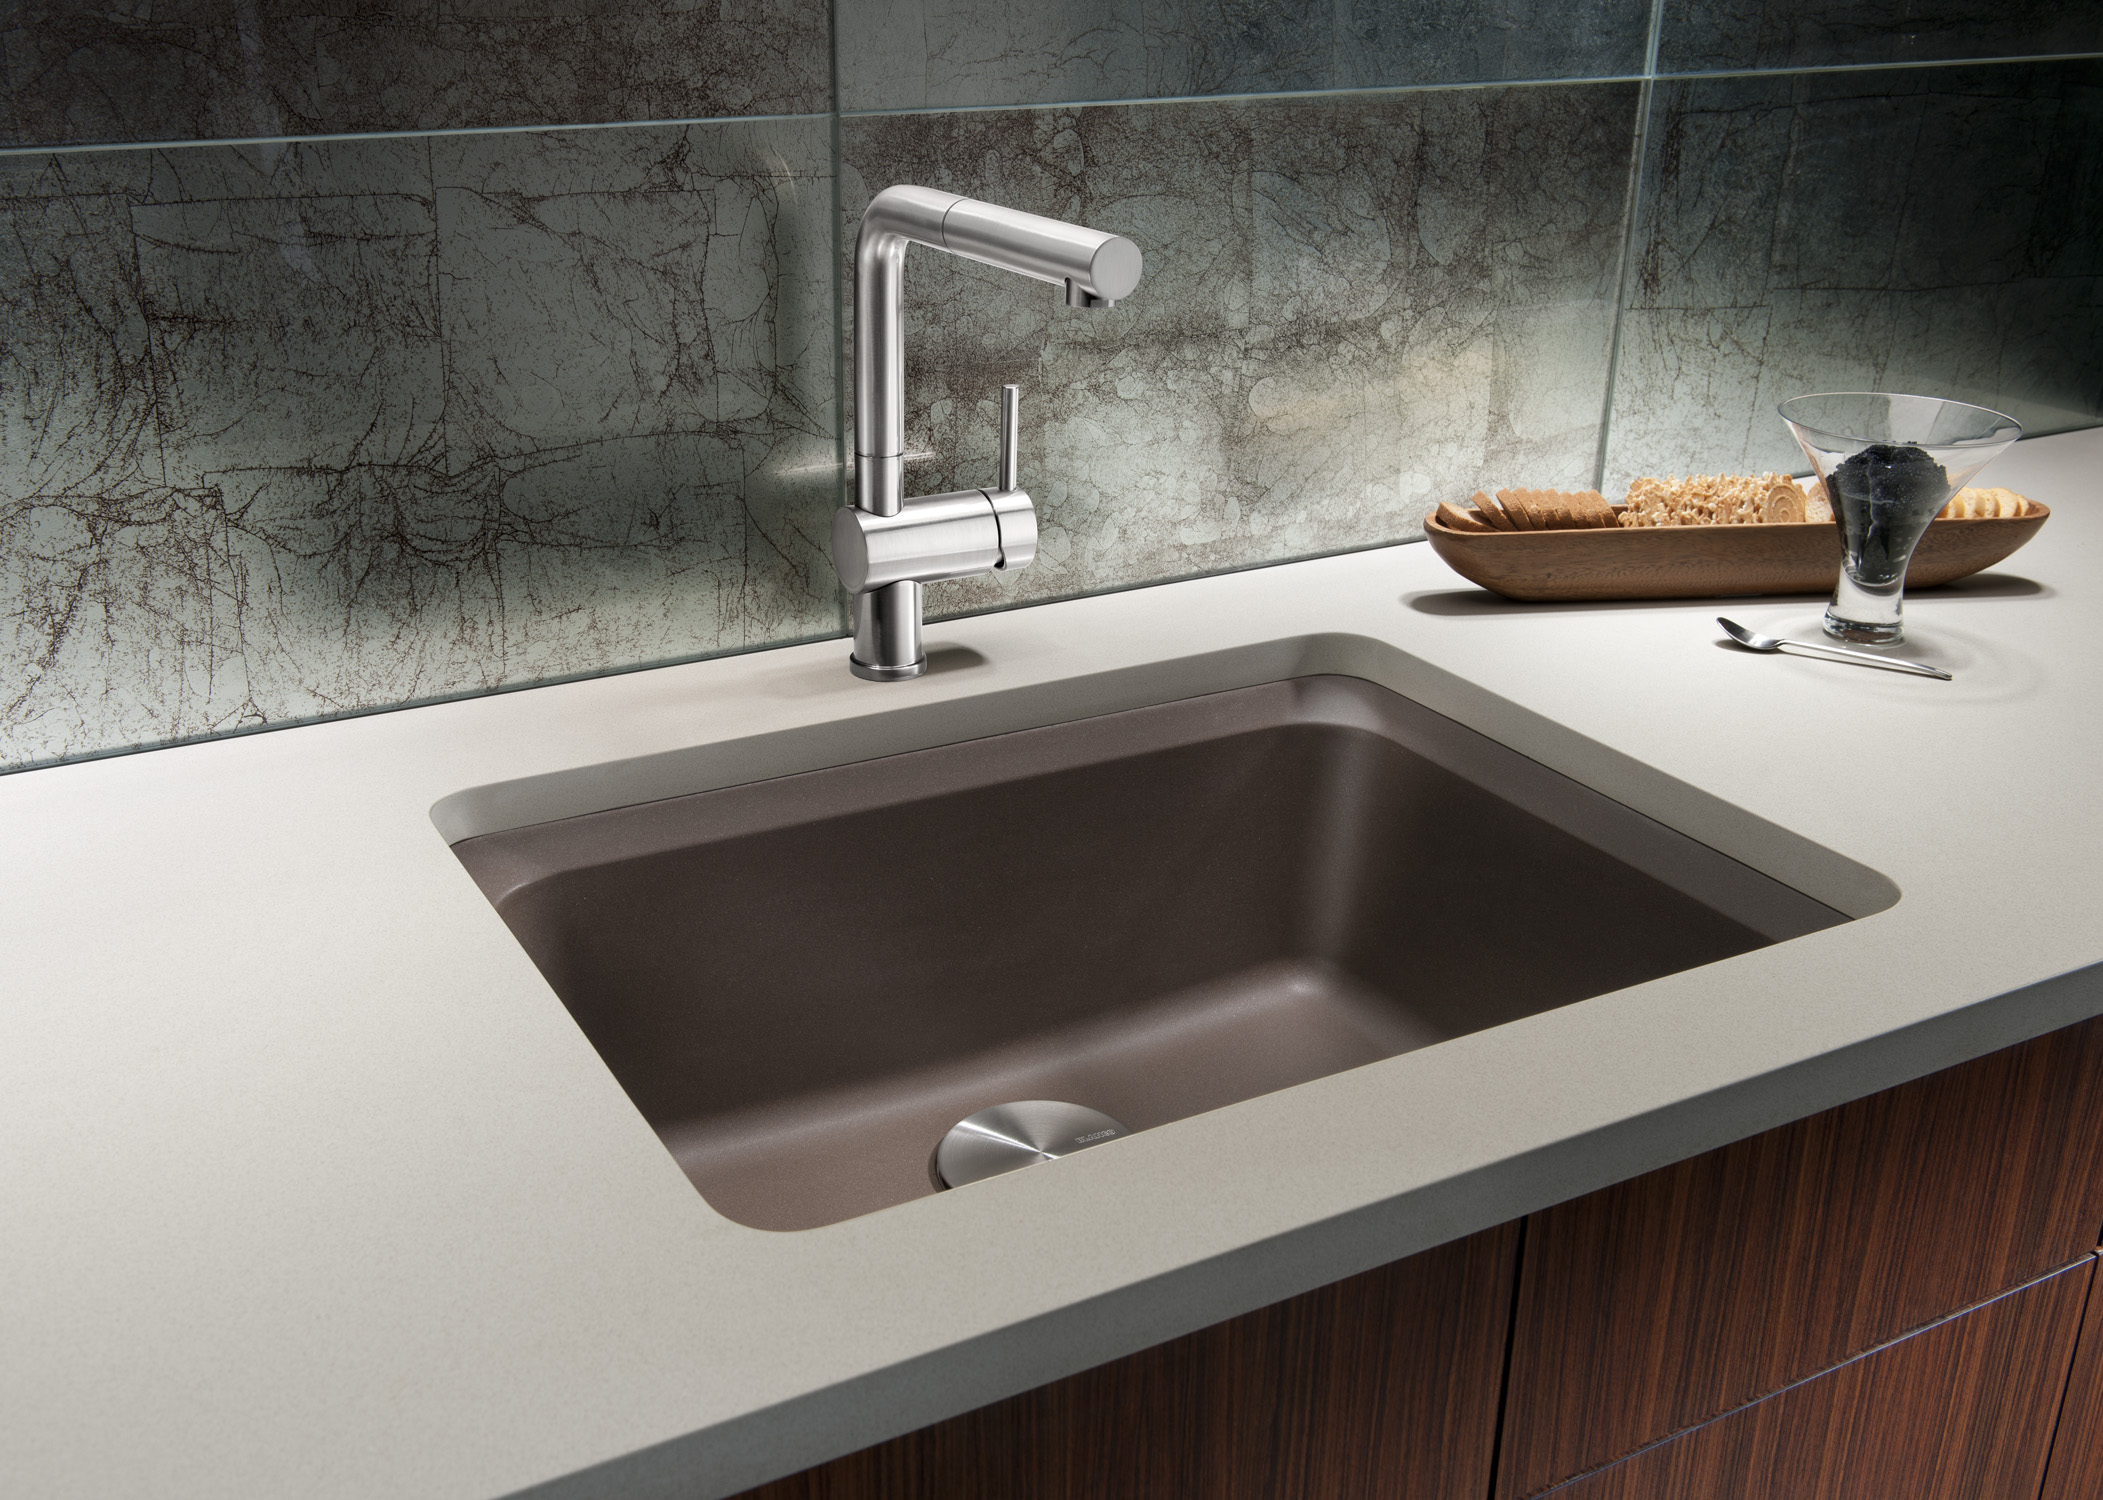 architecture-modern-design-ideas-kitchen-sinks-with-white-granite-countertop-and-marble-backsplash-also-brown-wooden-drawers-and-brightes-lighting-kitchen-sink-ideas